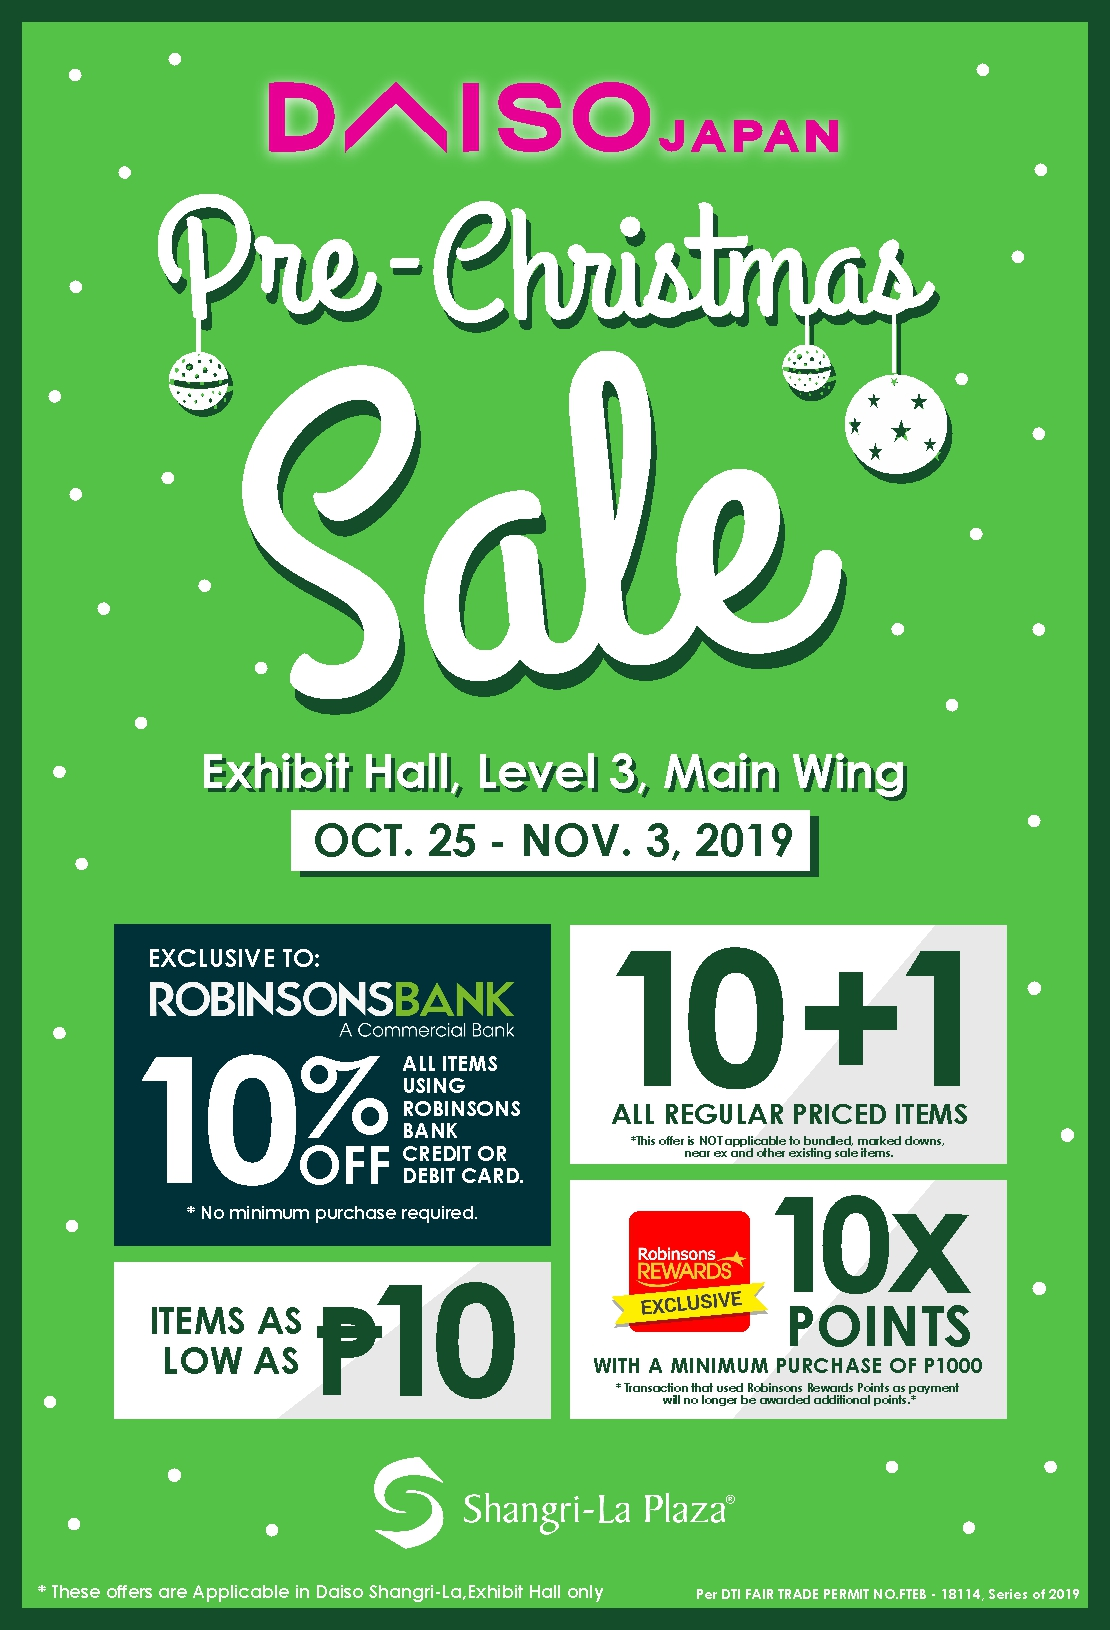 Daiso Japan Pre-Christmas Sale Poster